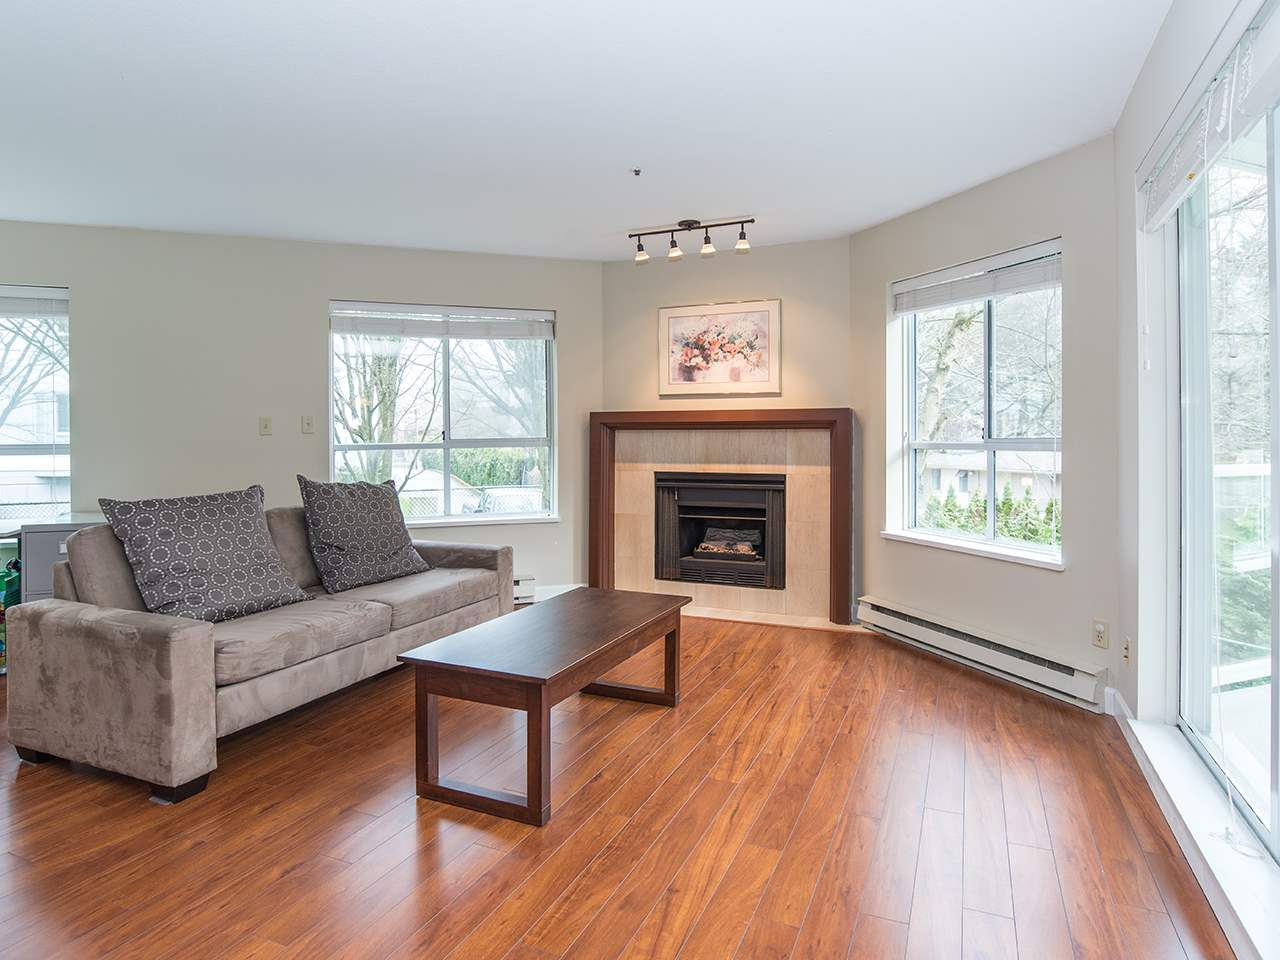 "Photo 1: 110 8651 ACKROYD Road in Richmond: Brighouse Condo for sale in ""The Cartier"" : MLS® # R2152253"